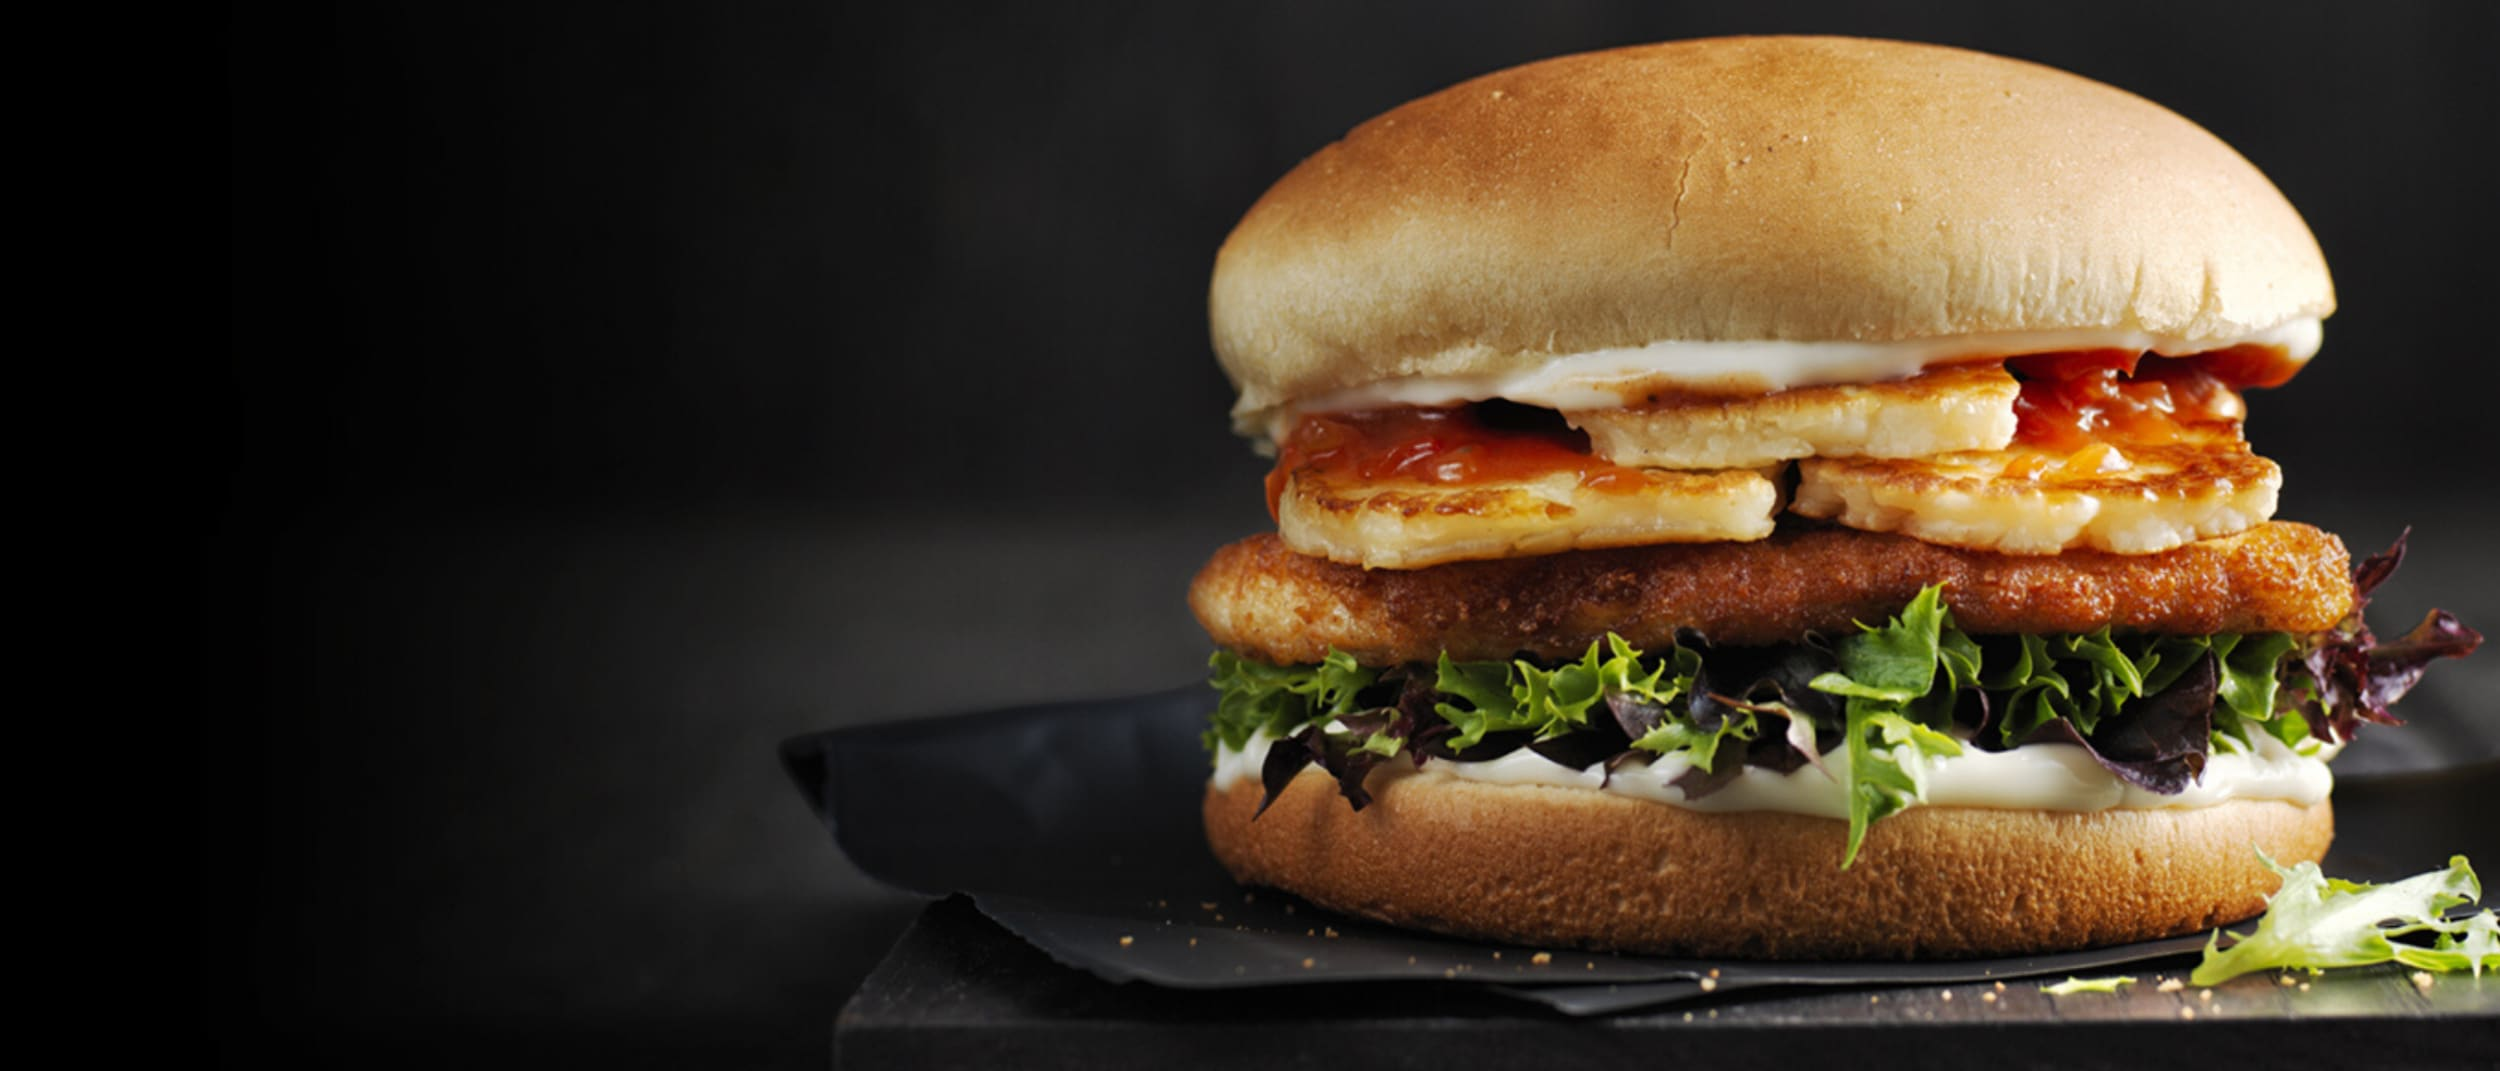 Oporto: Halleloumi - Our Halloumi & Chicken Burger is back...